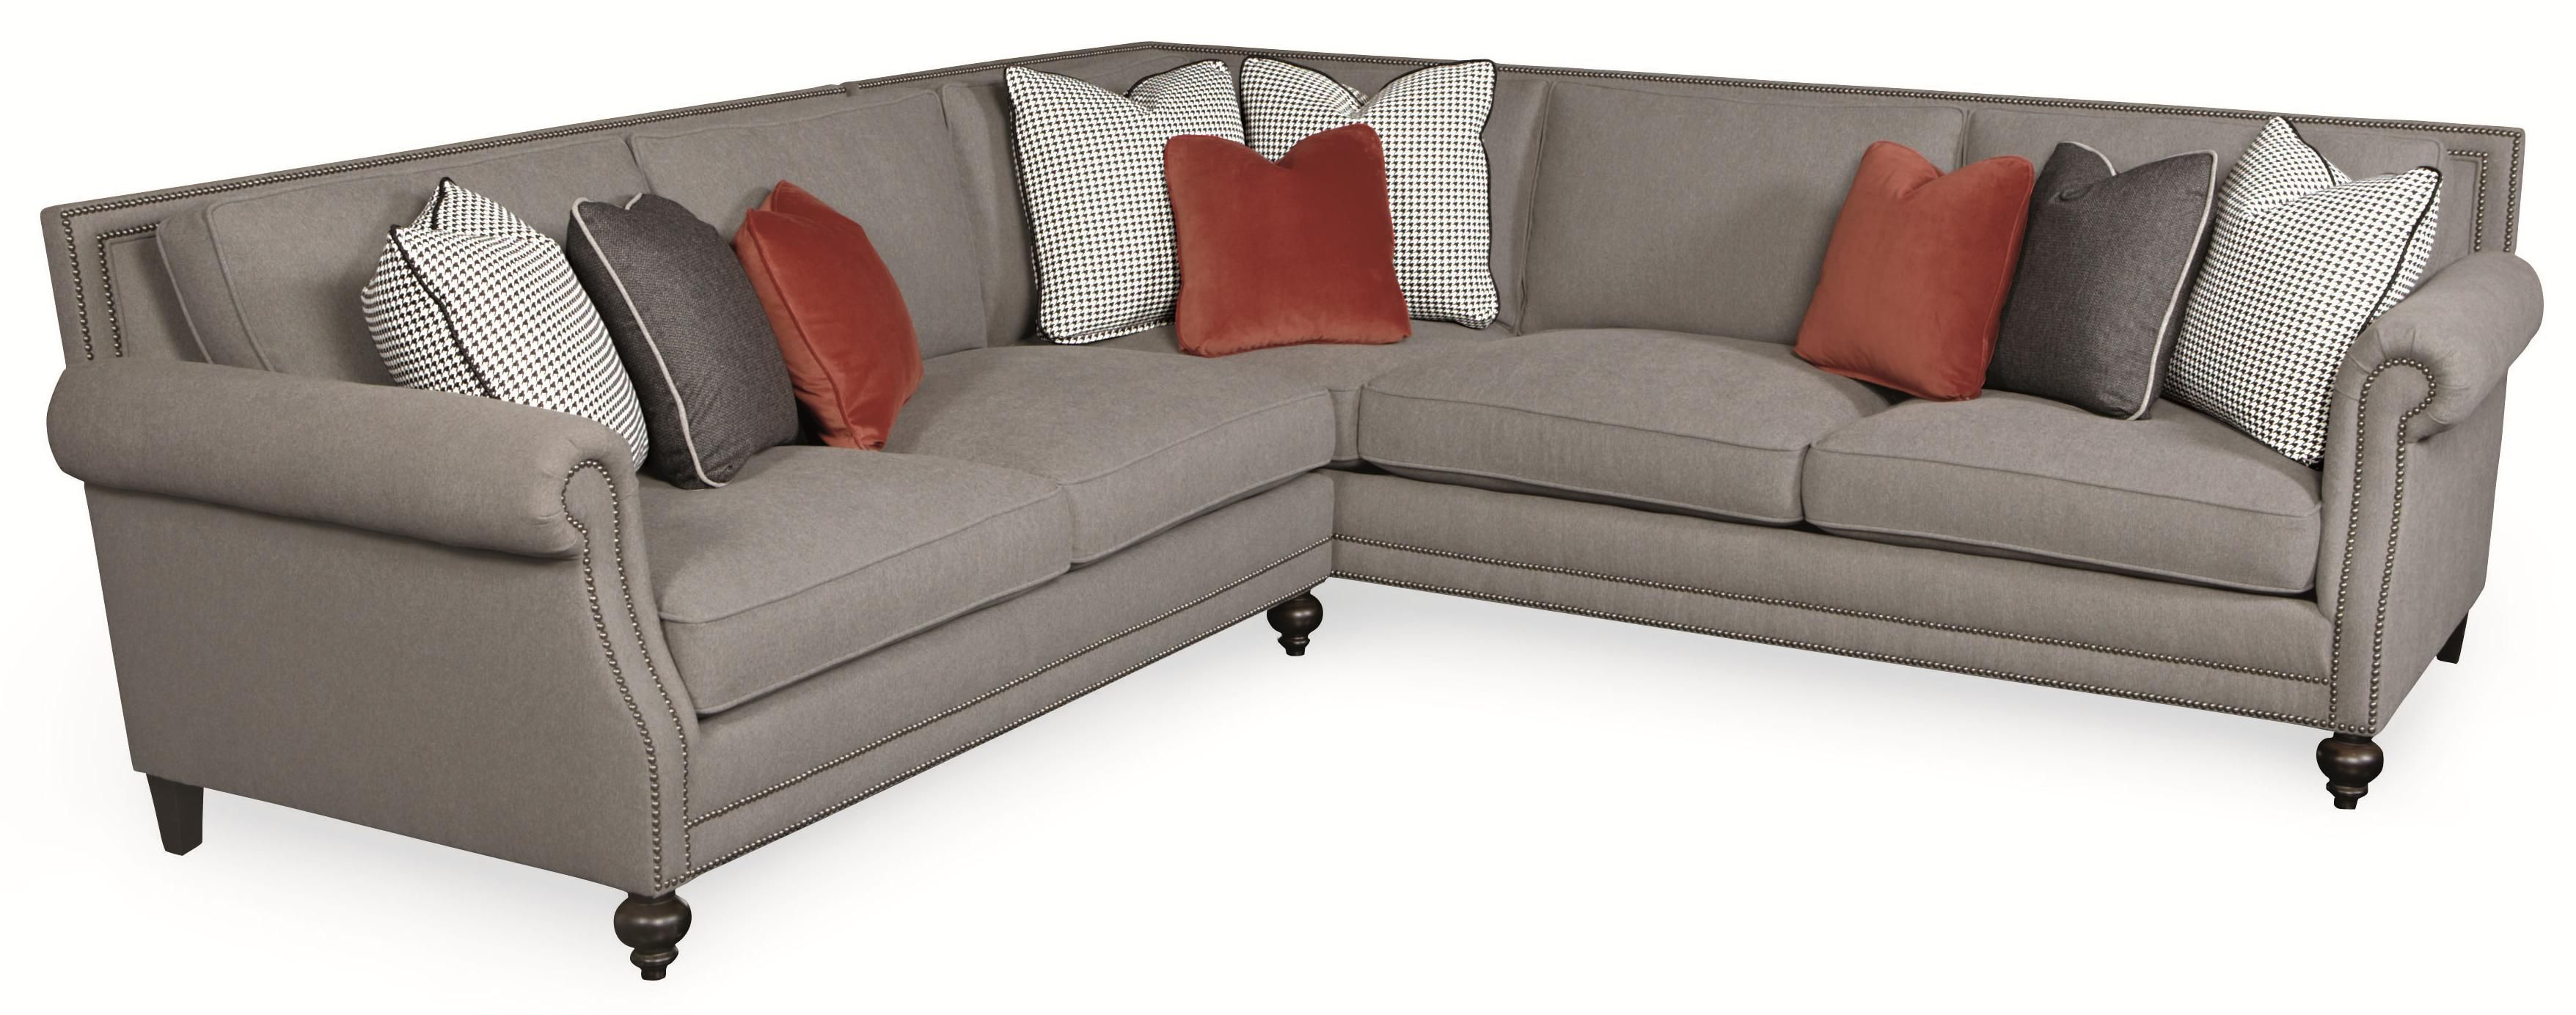 Transitional Style Sectional Sofas Fred Meyer Sofa Sleeper Brae Five Seat With By